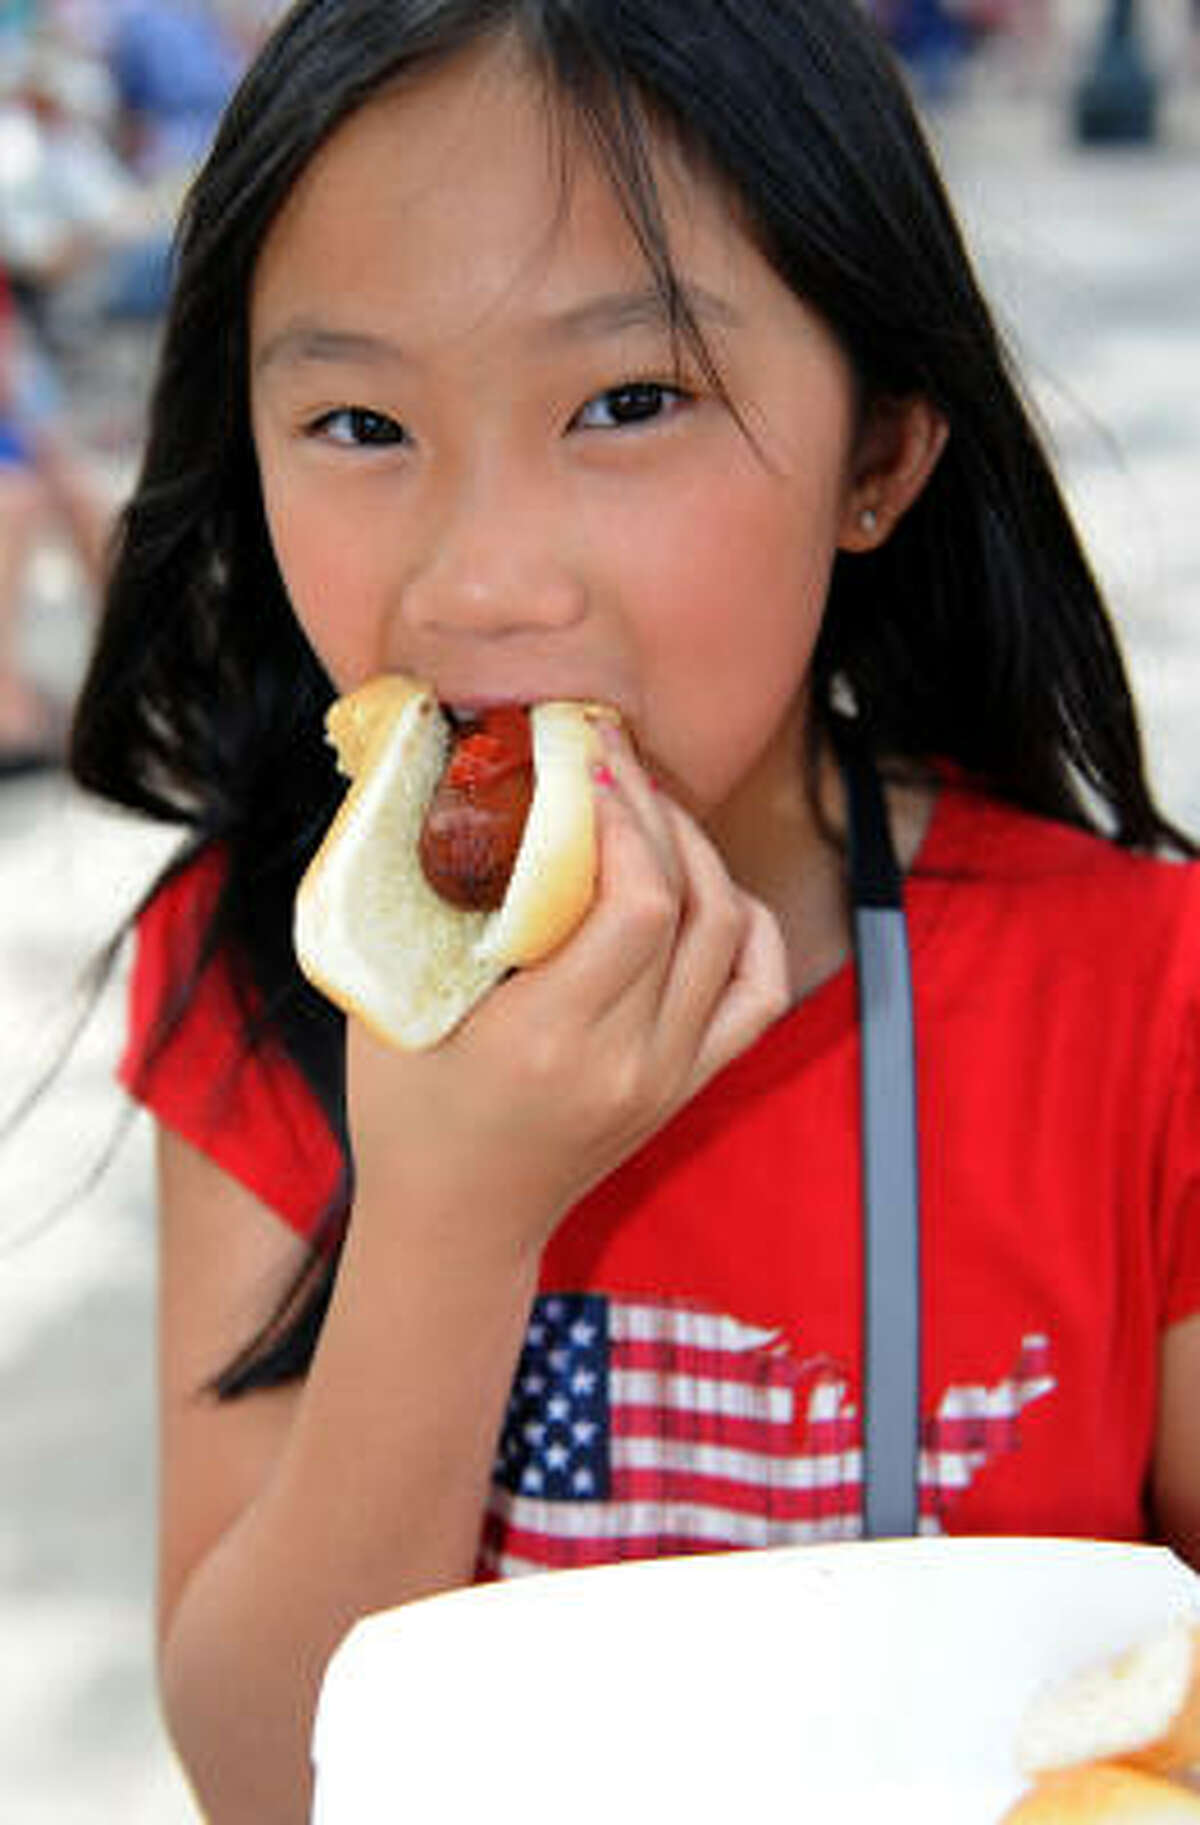 Alexis McNeilly, 10, enjoys a free hot dog at League Park.